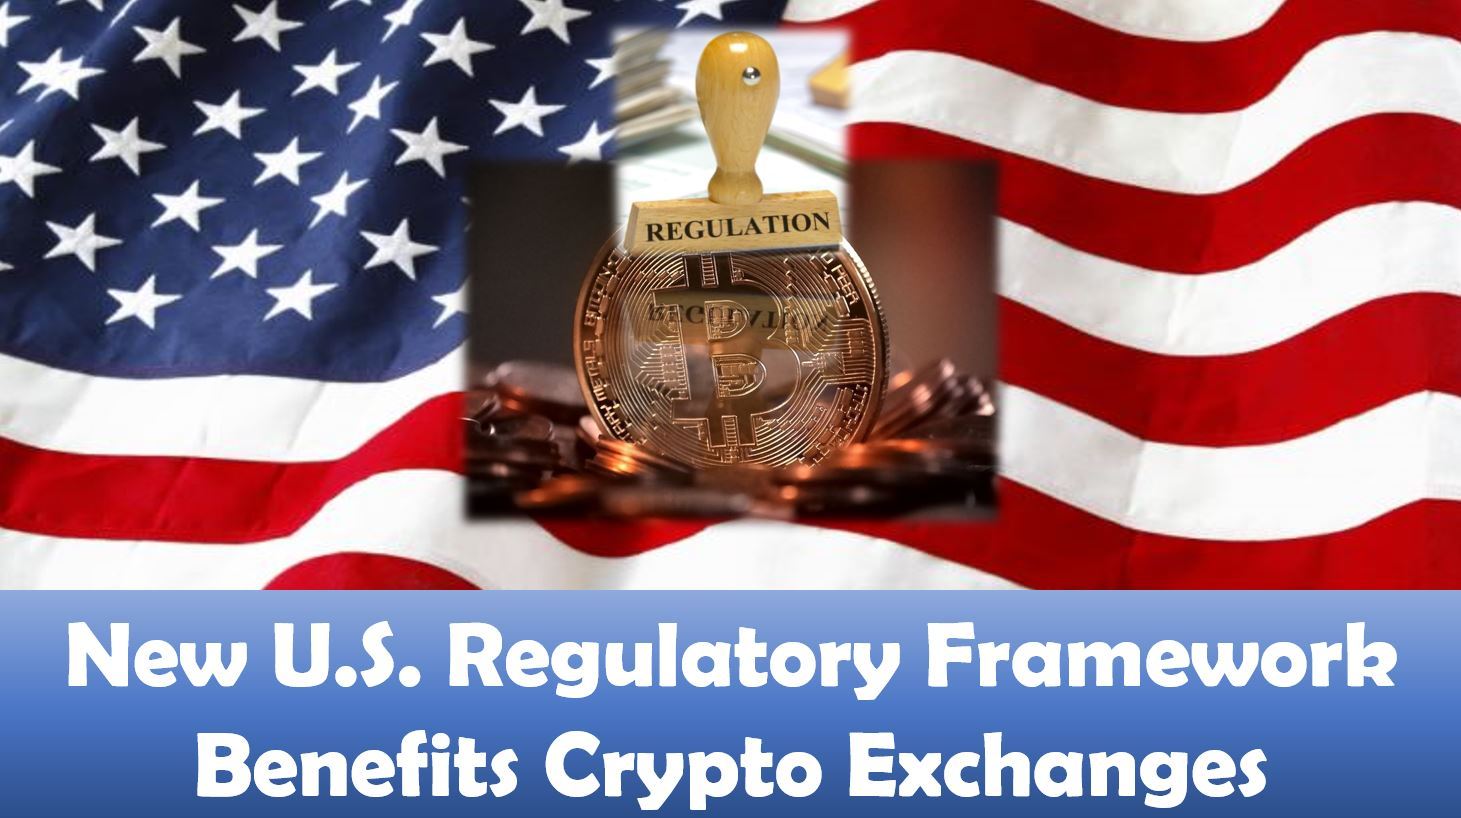 New U.S. Regulatory Framework Benefits Crypto Exchanges